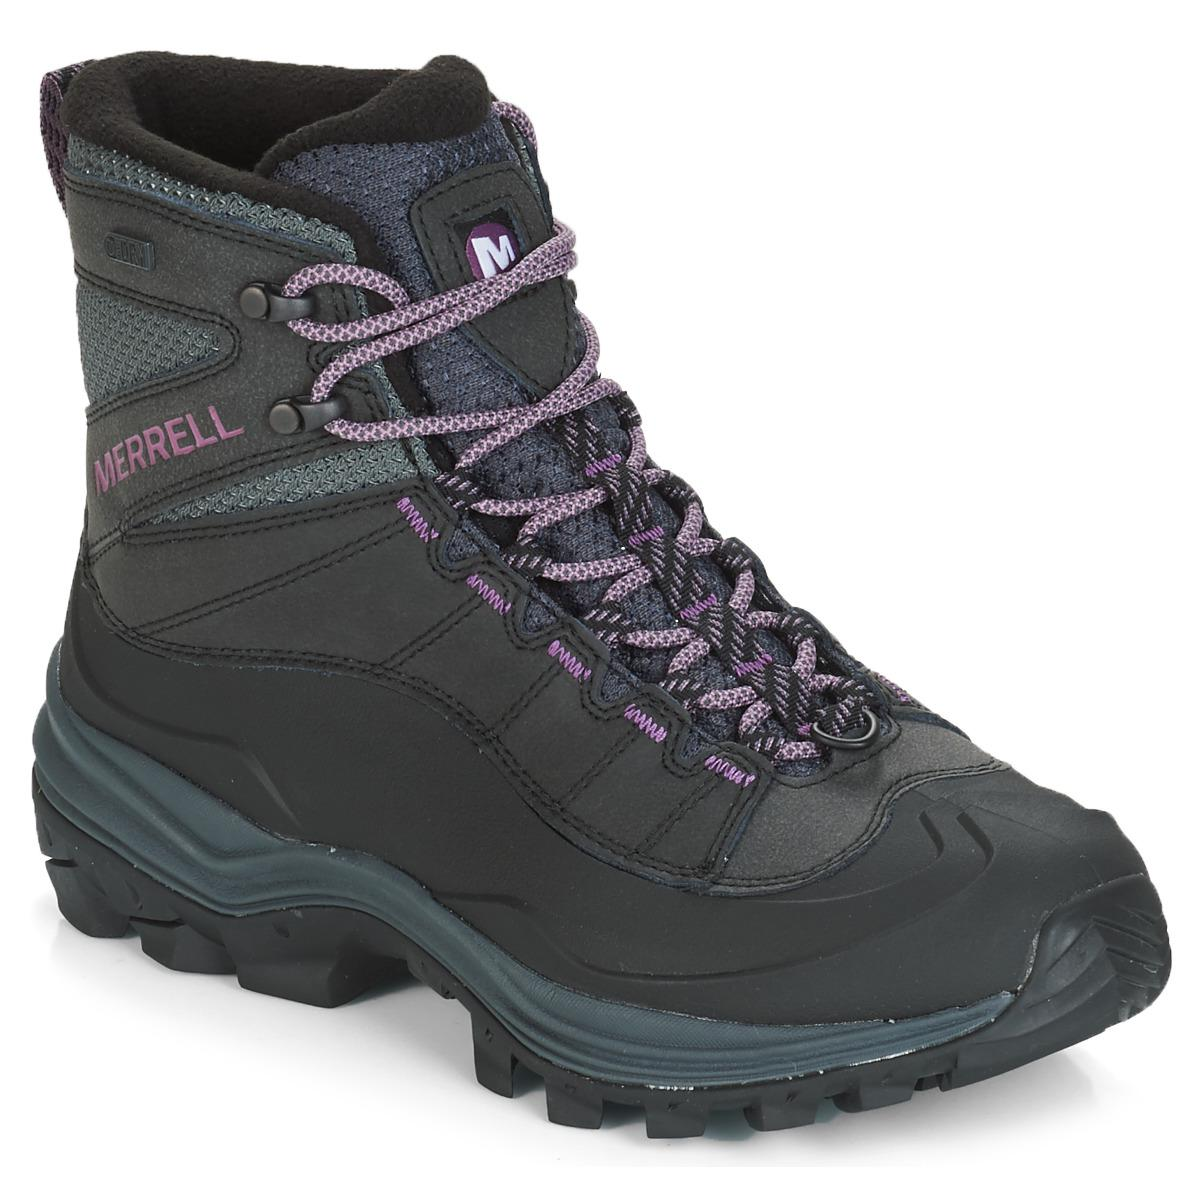 a5745c26ea9 Women's Black Thermo Chill Mid Shell Waterproof